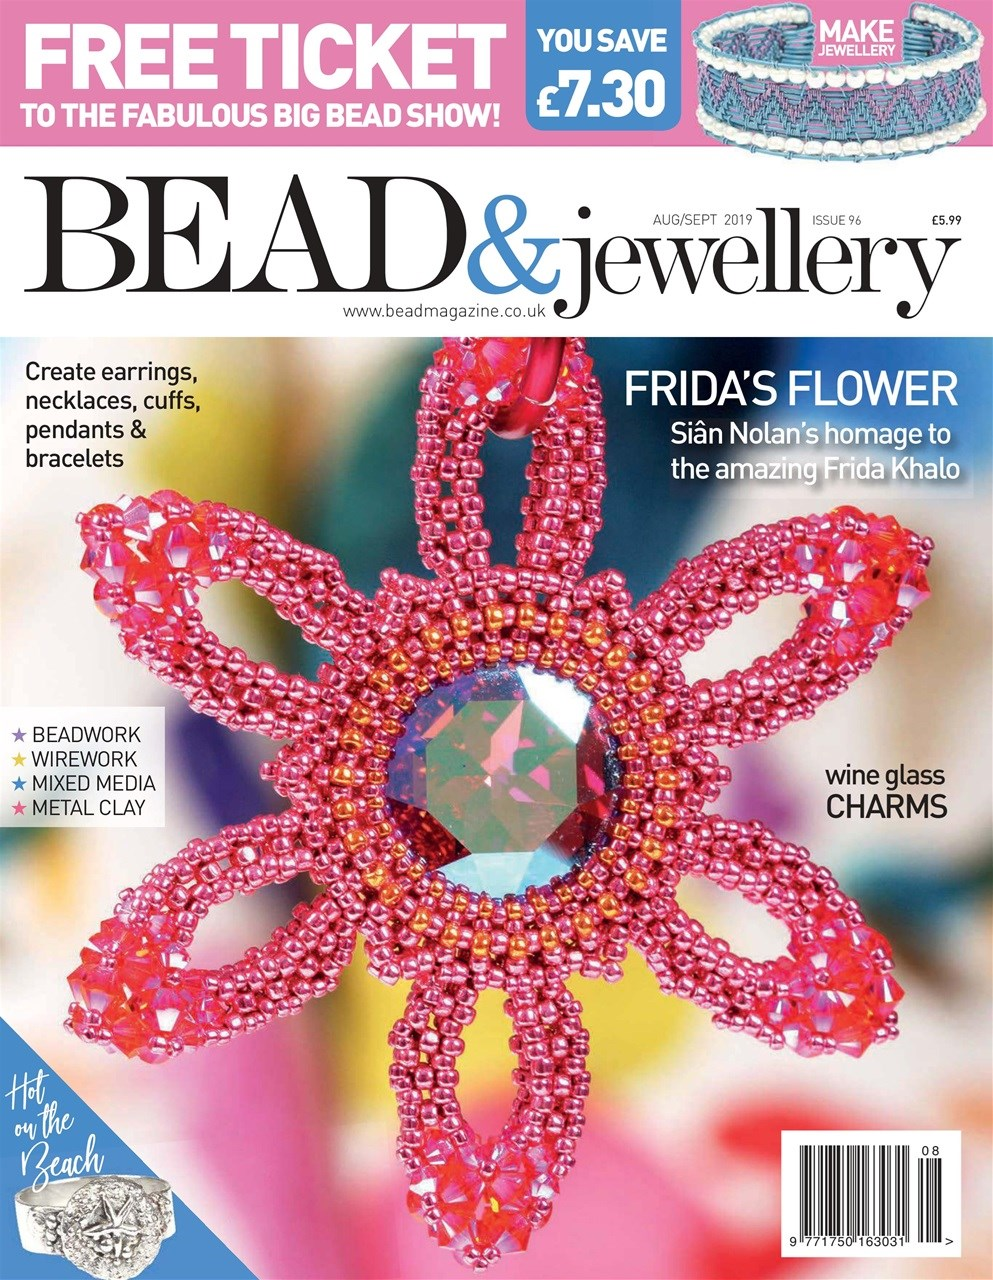 Best Price for Bead & Jewellery Magazine Subscription